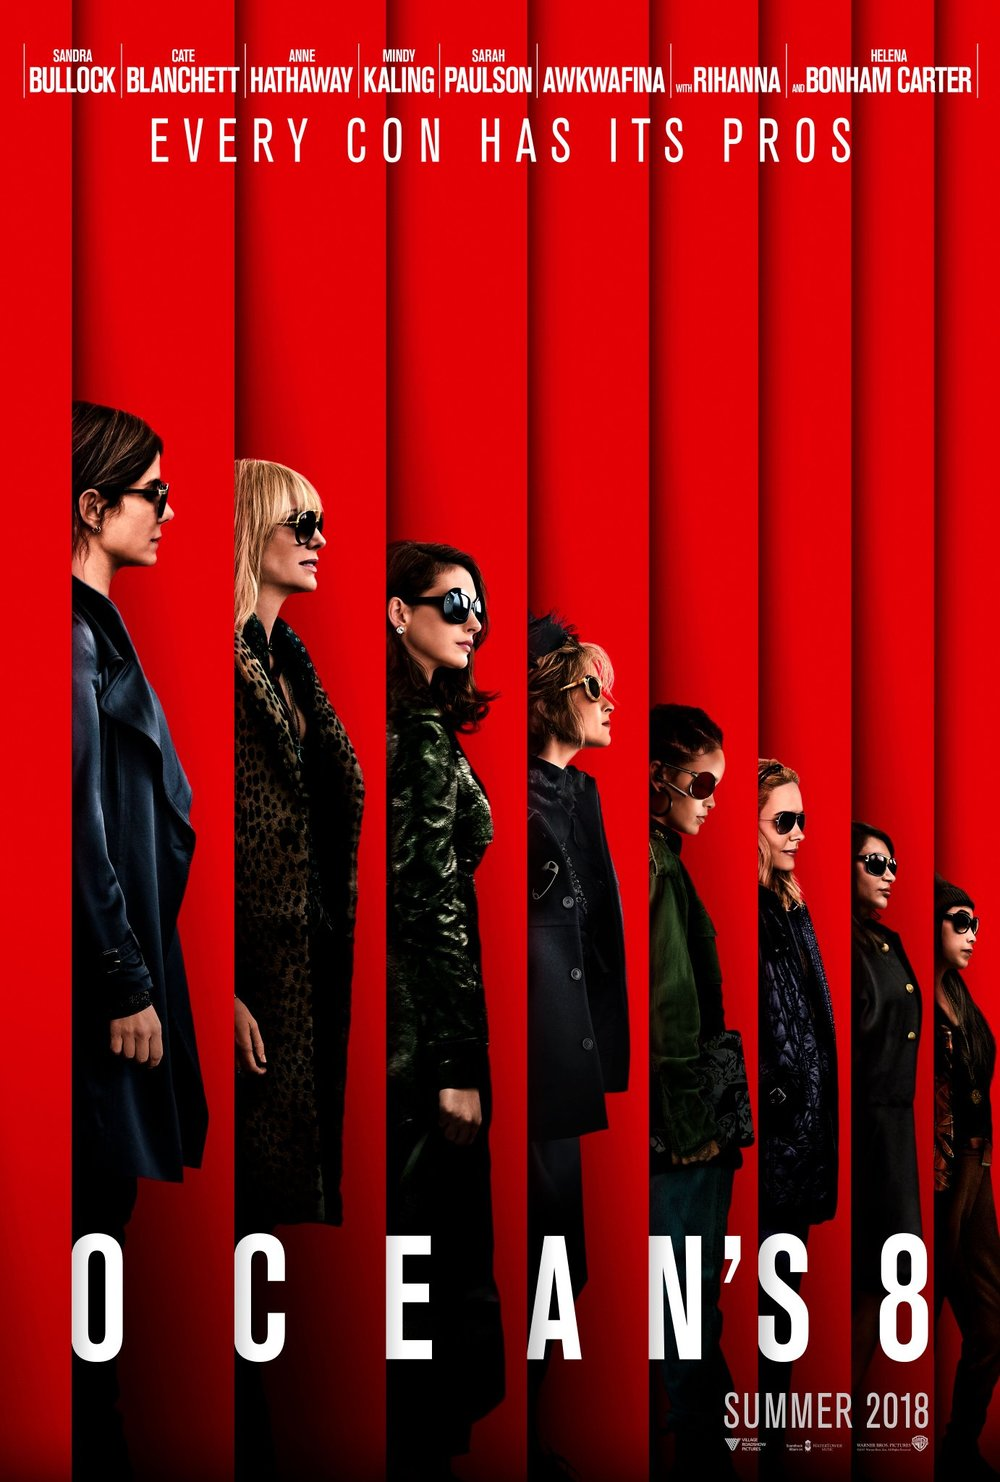 Ocean's 8 (2018) - Directed by: Gary RossStarring: Sandra Bullock, Cate Blanchett, Anne HathawayRated: PG13Running Time: 1h 50mTMM Score: 2 stars out of 5STRENGTHS: Star Power?WEAKNESSES: Boring, Character Development